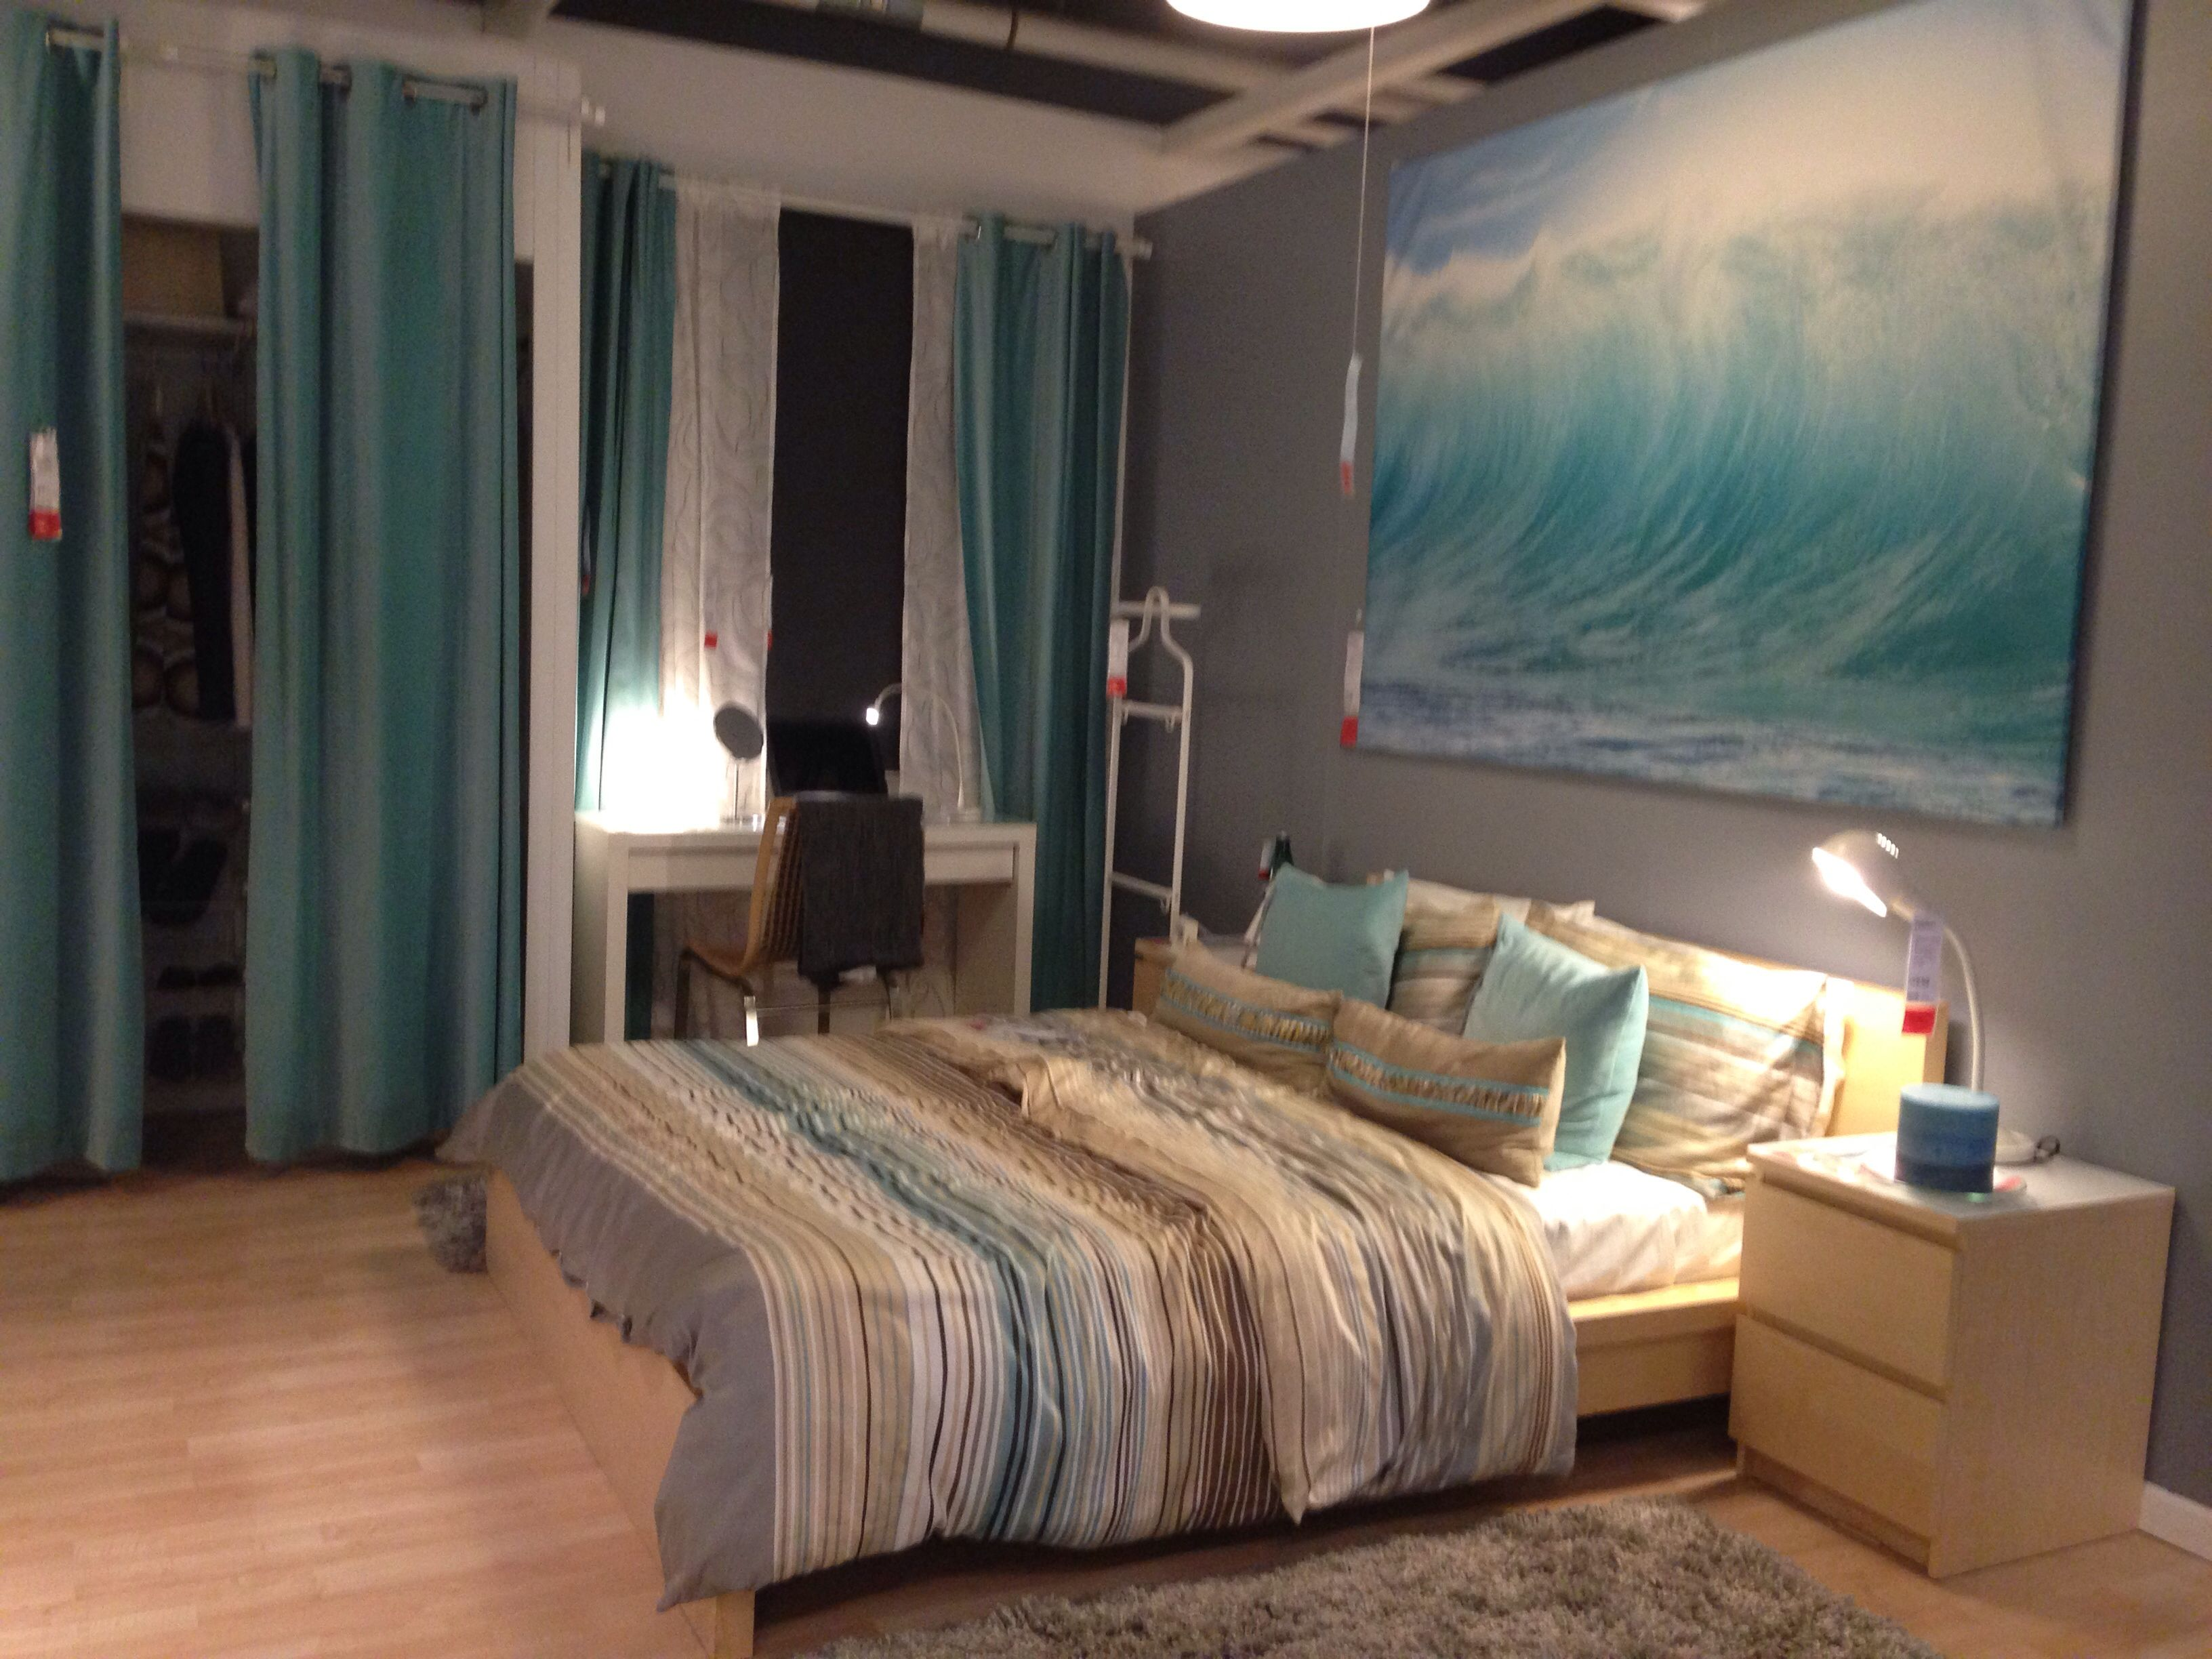 beach themed bedroom everything is sold at ikea love it beach themed bedroom everything is sold at ikea love it